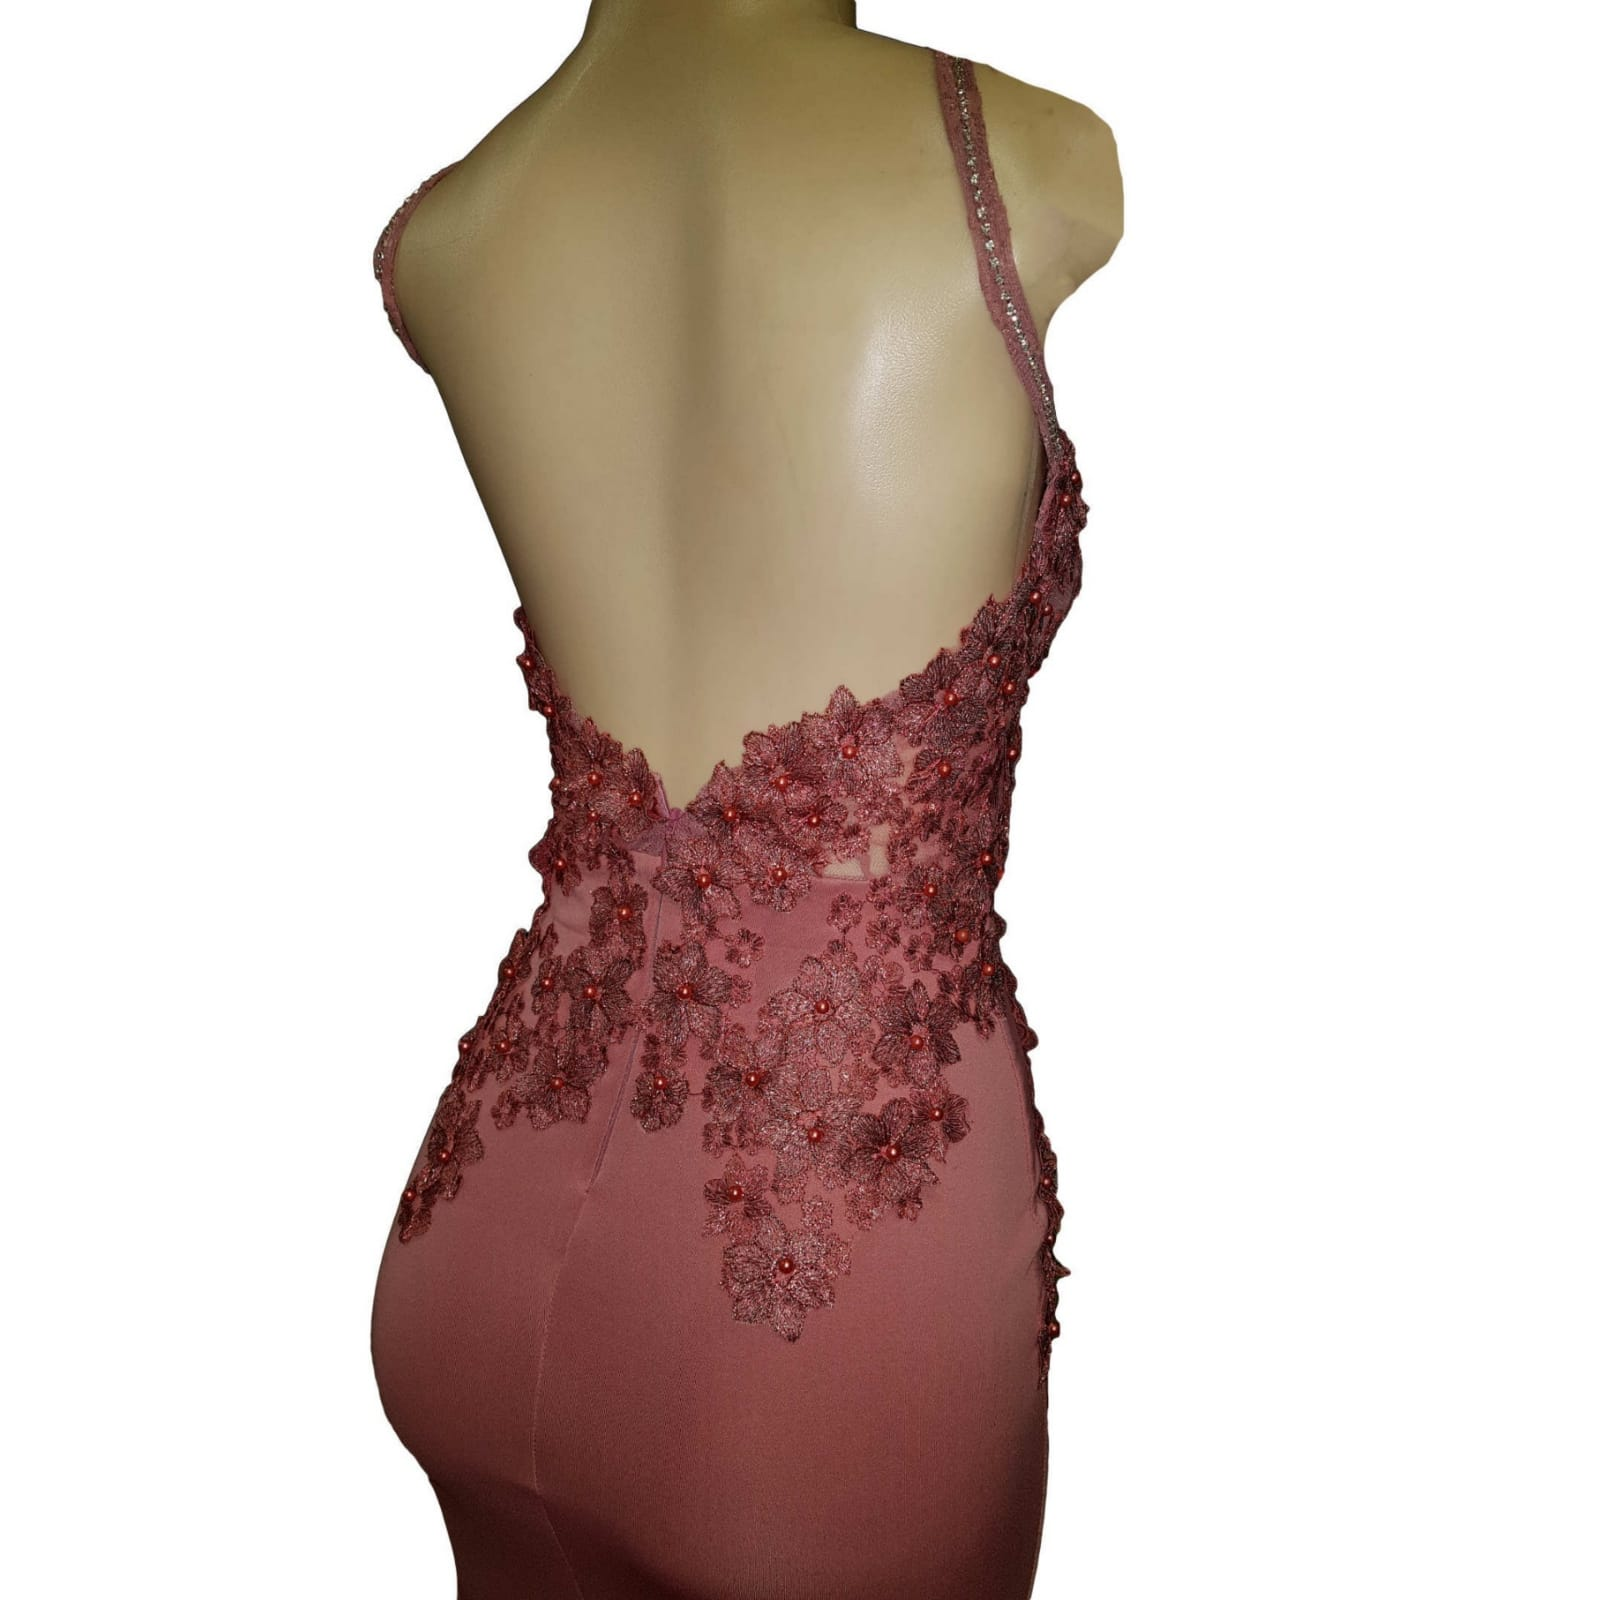 Pink elegant prom dress 3 choose a pink elegant prom dress for your special event. A colour that inspires kindness, sensitivity and warmth. This colour on this 3d shine lace long sexy dress creates a feel good mood, and that all will be amazing for your special night.